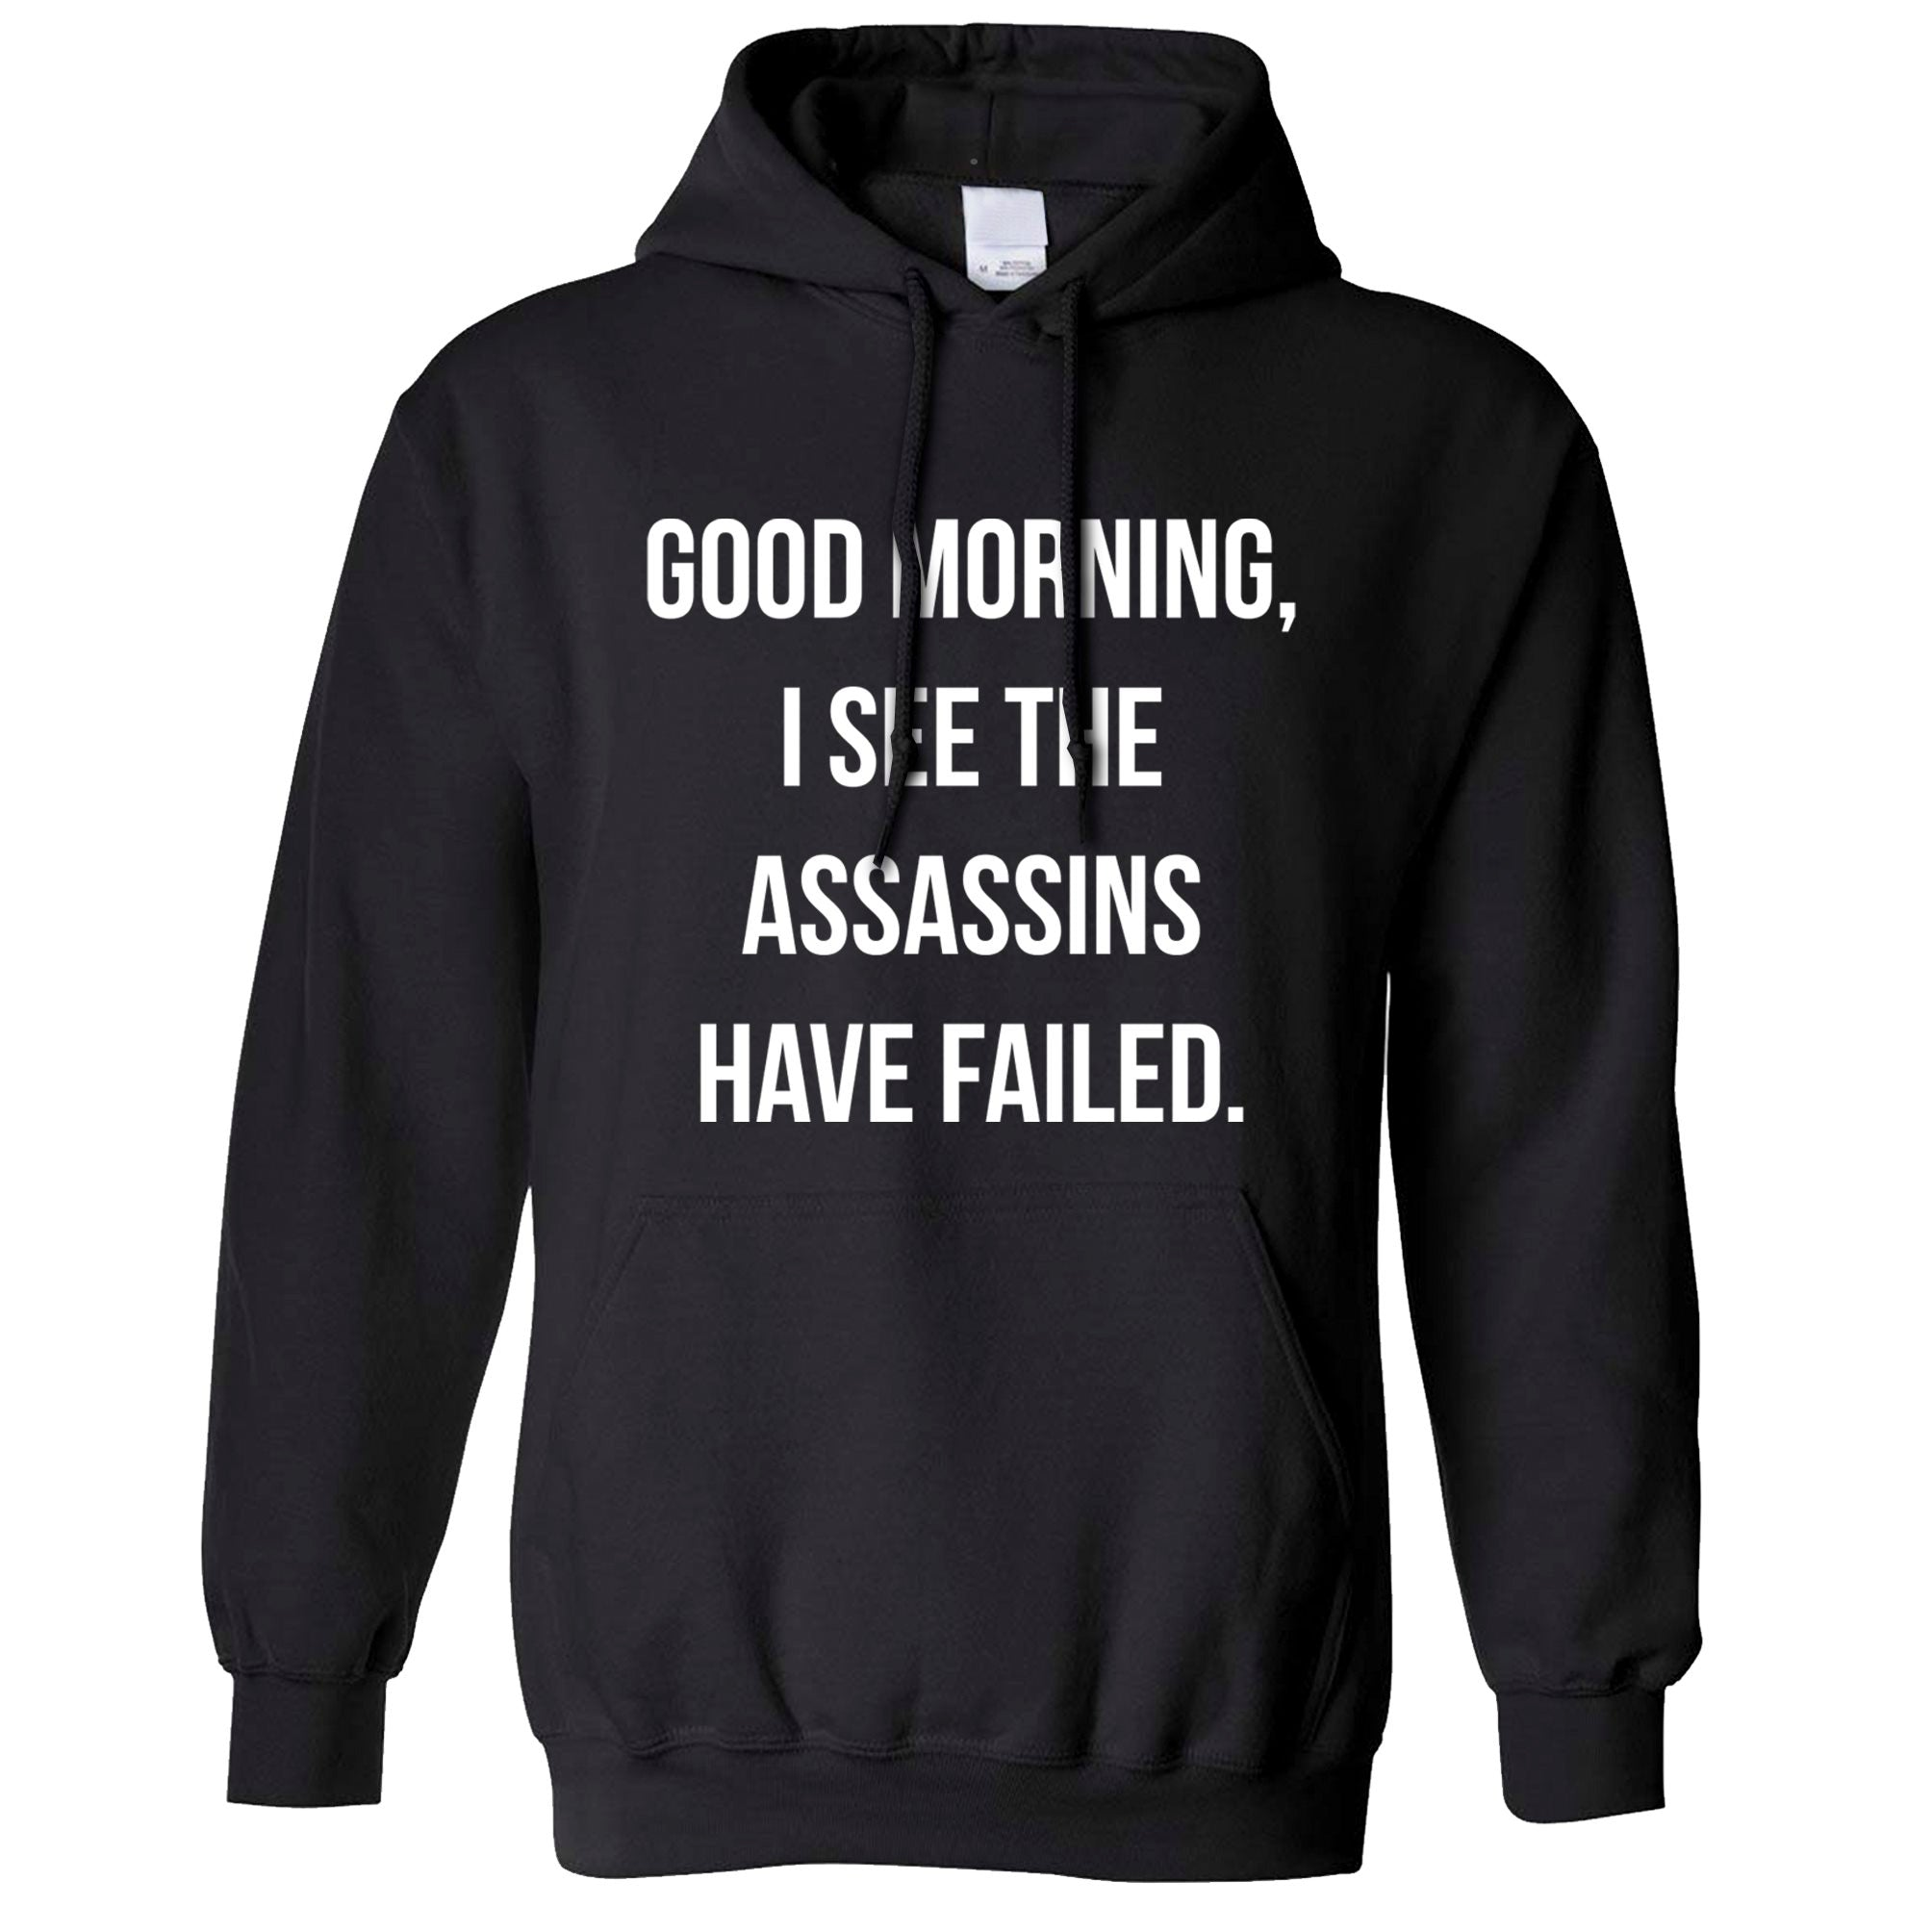 Novelty Hoodie I See The Assassins Have Failed Joke Hooded Jumper